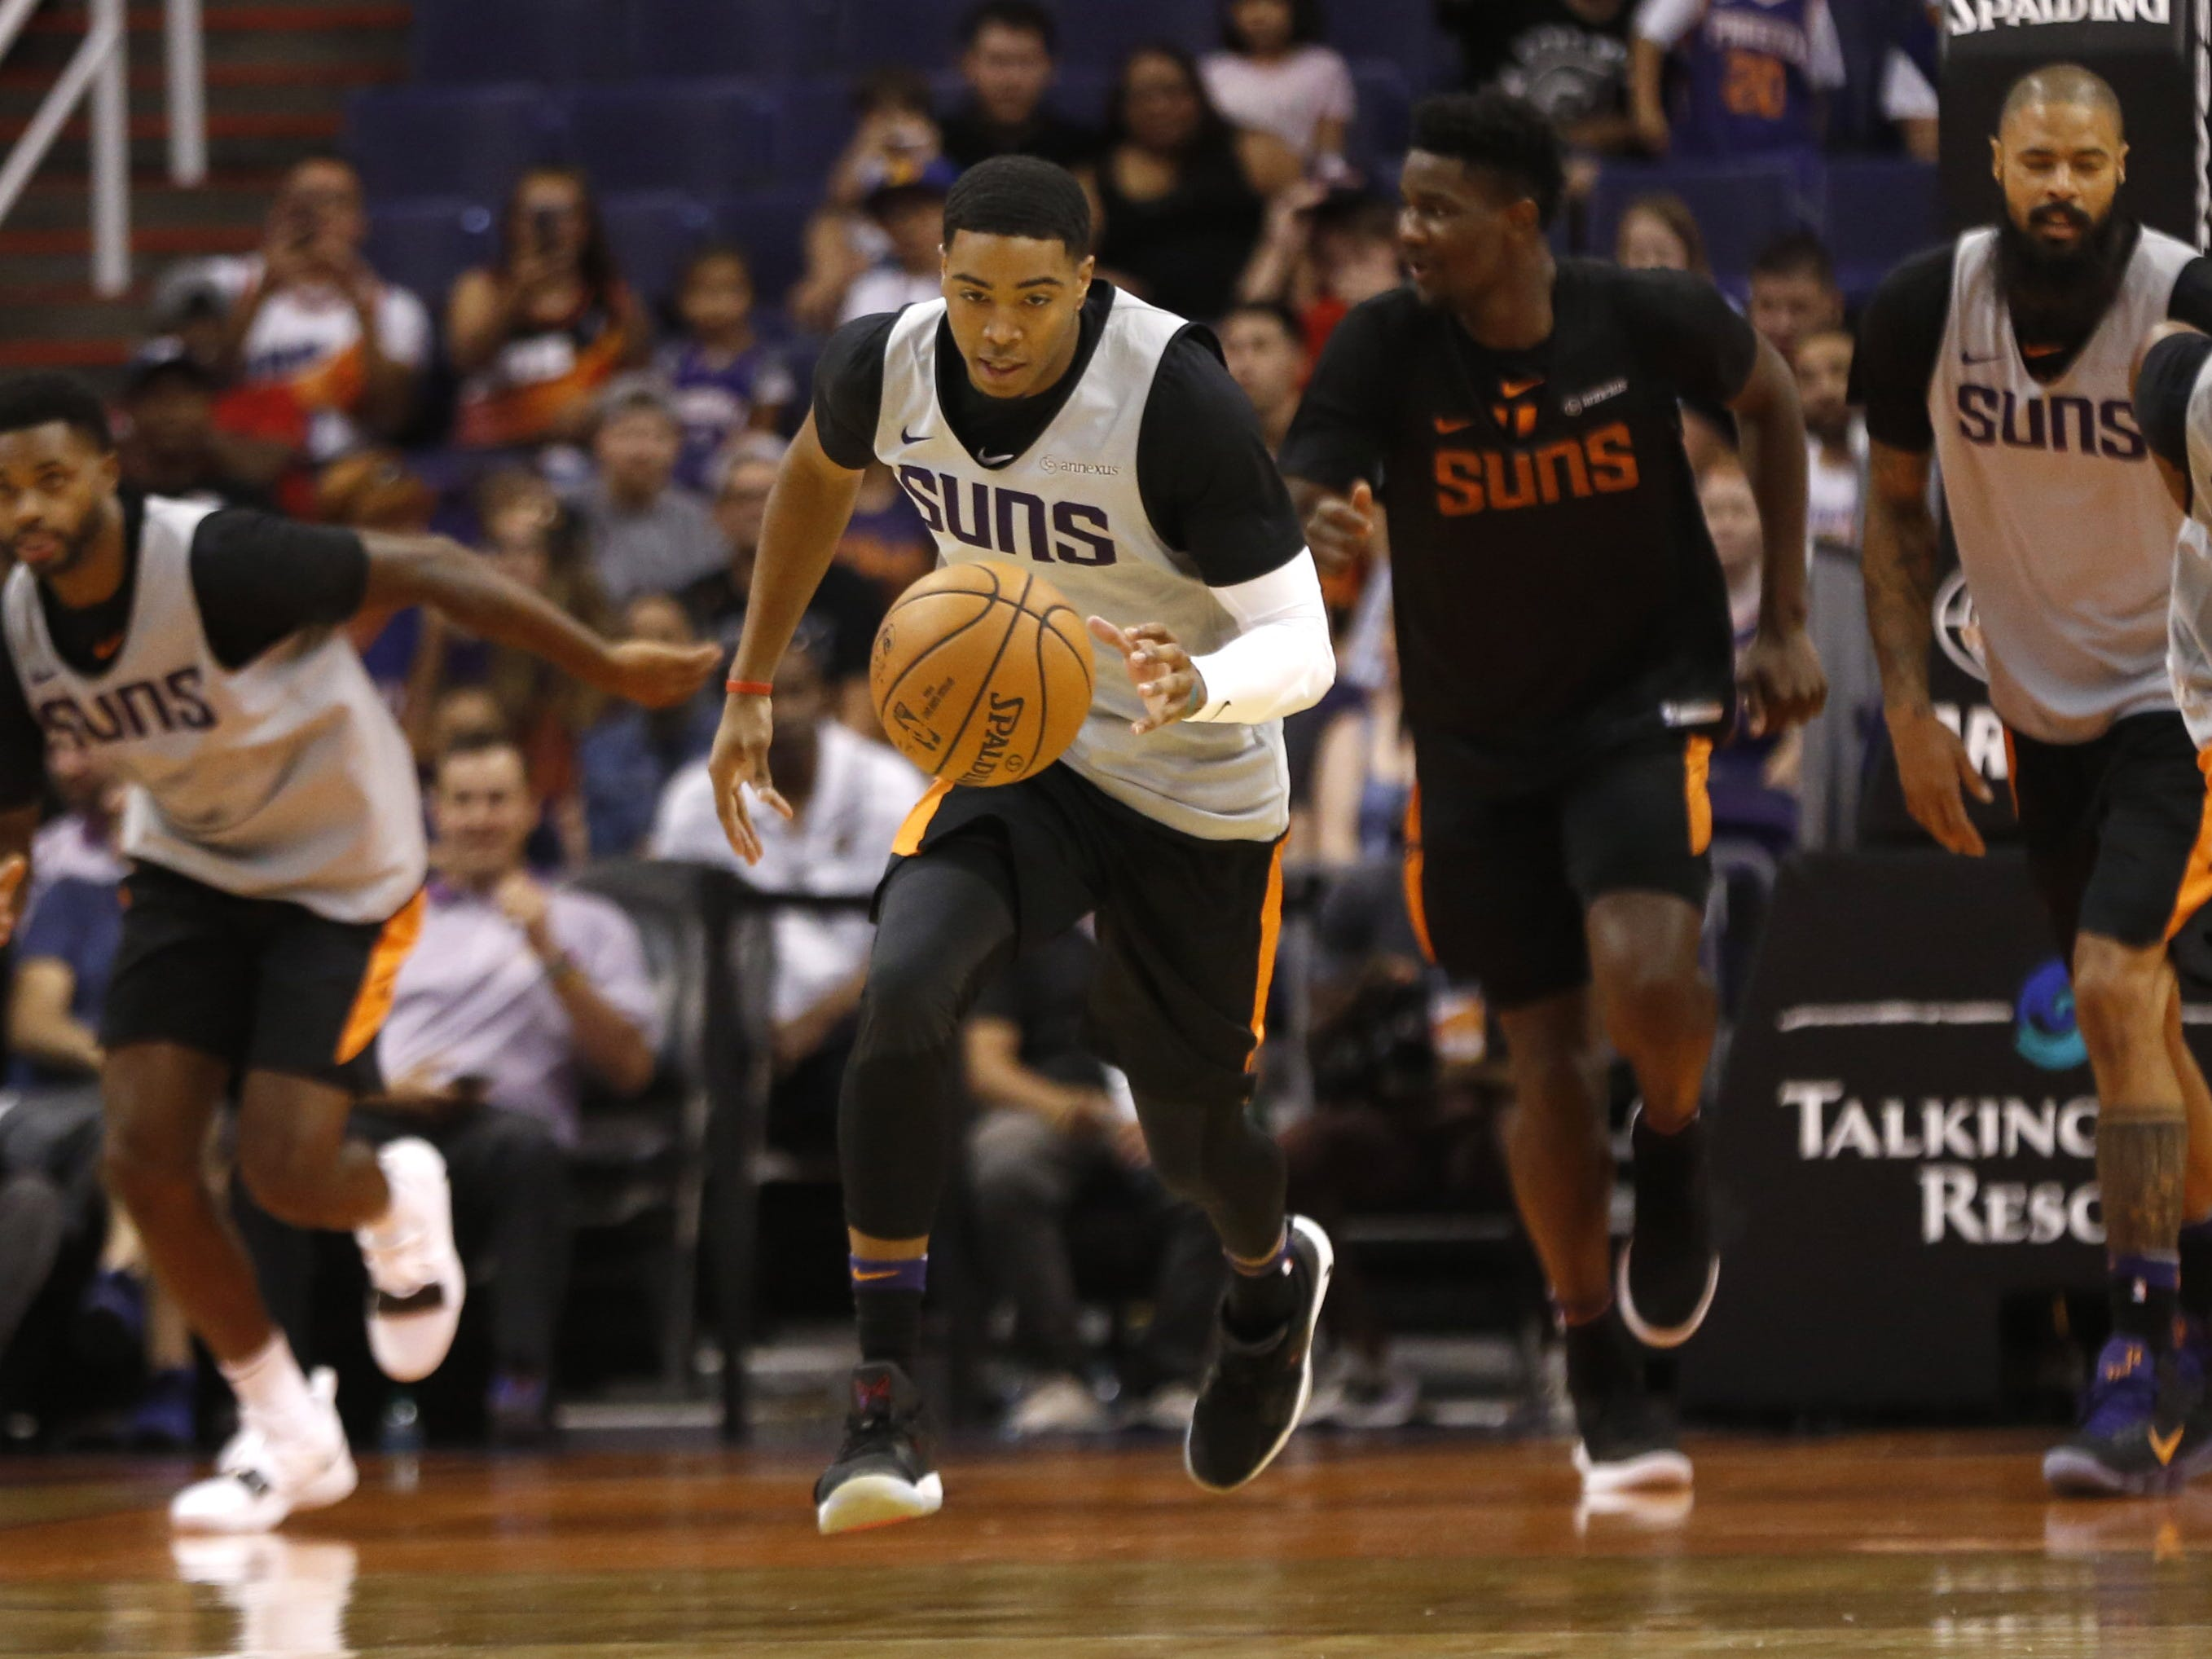 Suns Shaquille Harrison dribbles up court during an Open Practice at Talking Stick Resort Arena in Phoenix, Ariz. on Sept. 29, 2018.